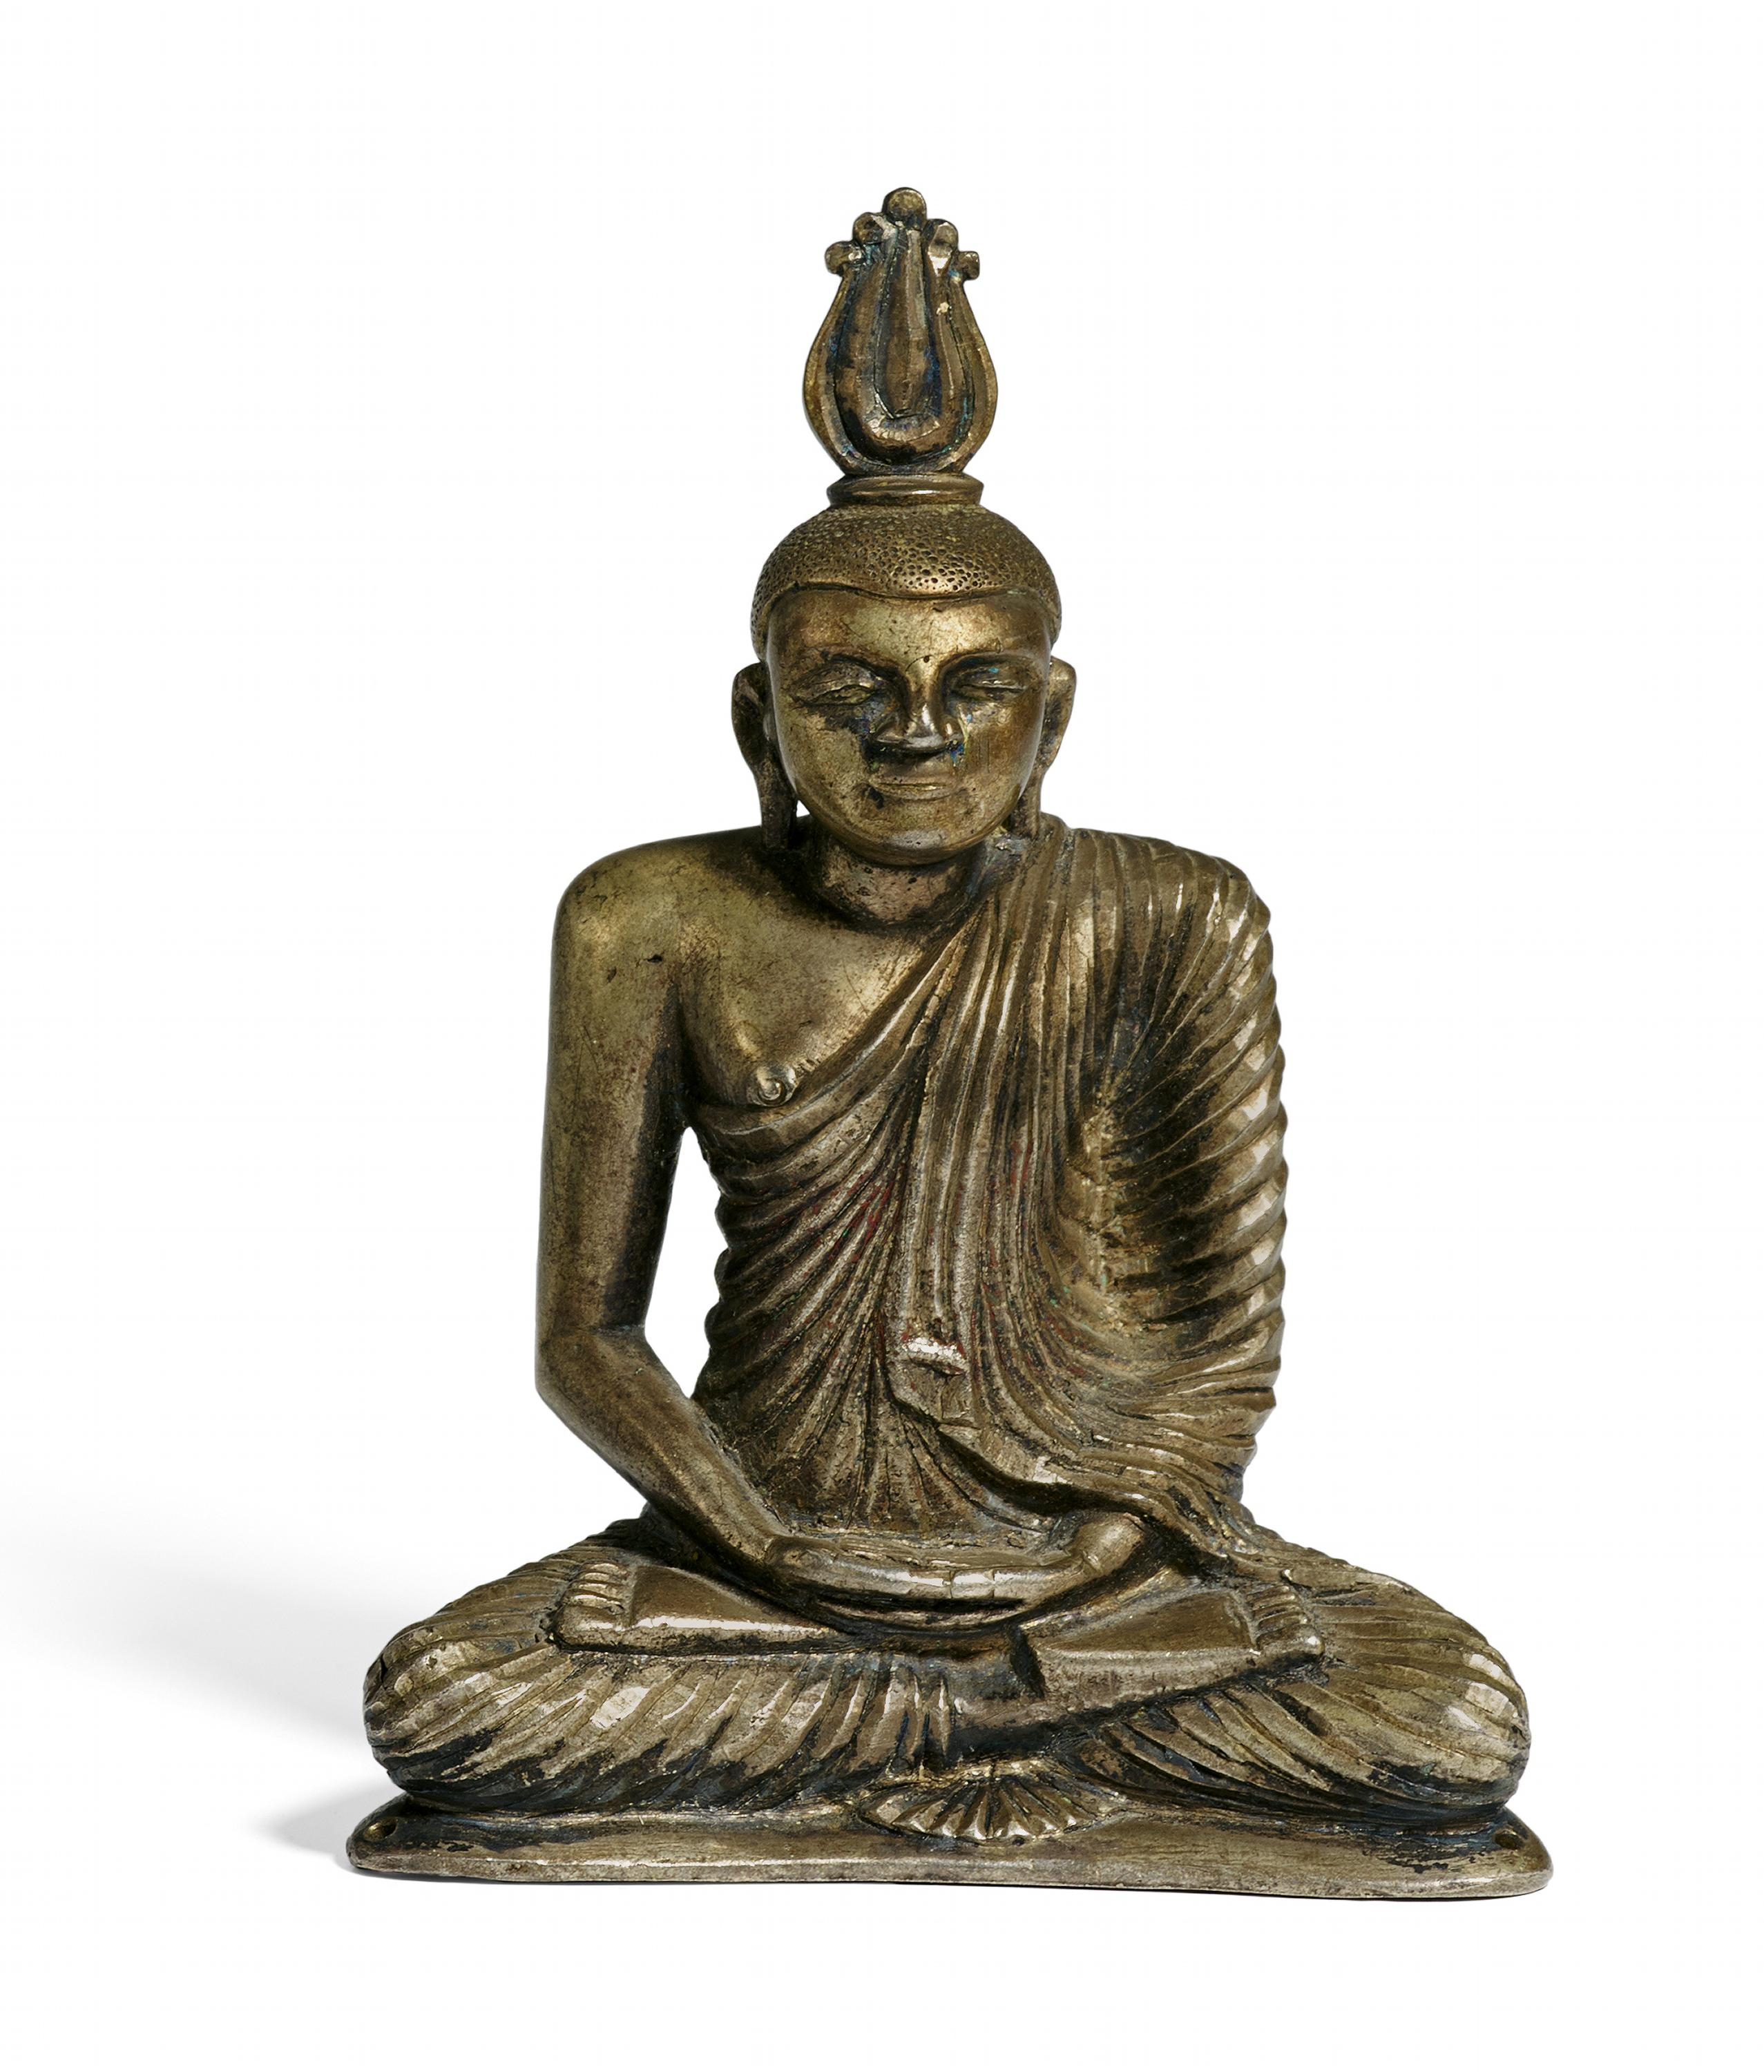 Lot 59 - BUDDHA SAMADHI. Origin: Sri Lanka/Ceylon. Date: 19th c. Technique: Silver. Thick-walled cast with